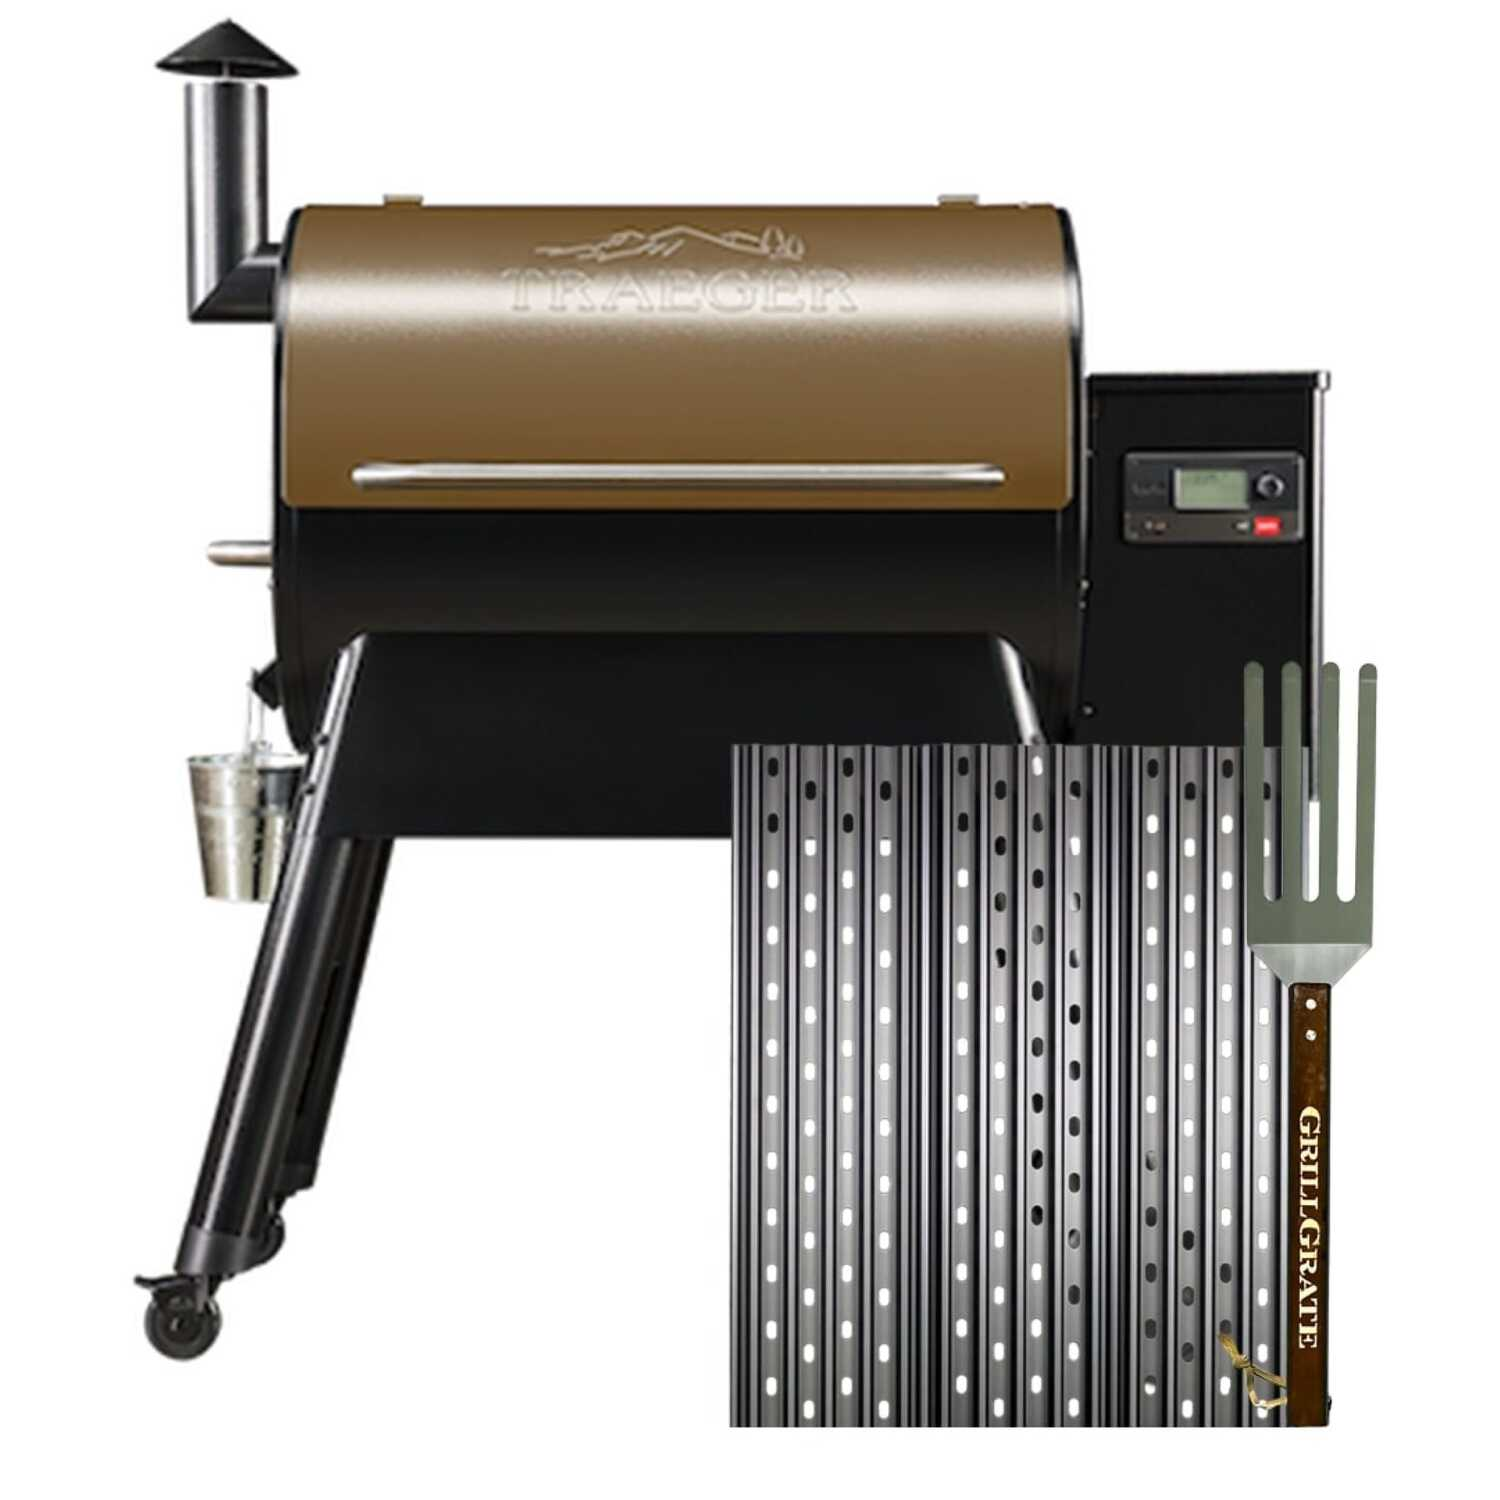 GrillGrate  Aluminum  Grill Grate Kit  Traeger Pro and other pellet and gas grills